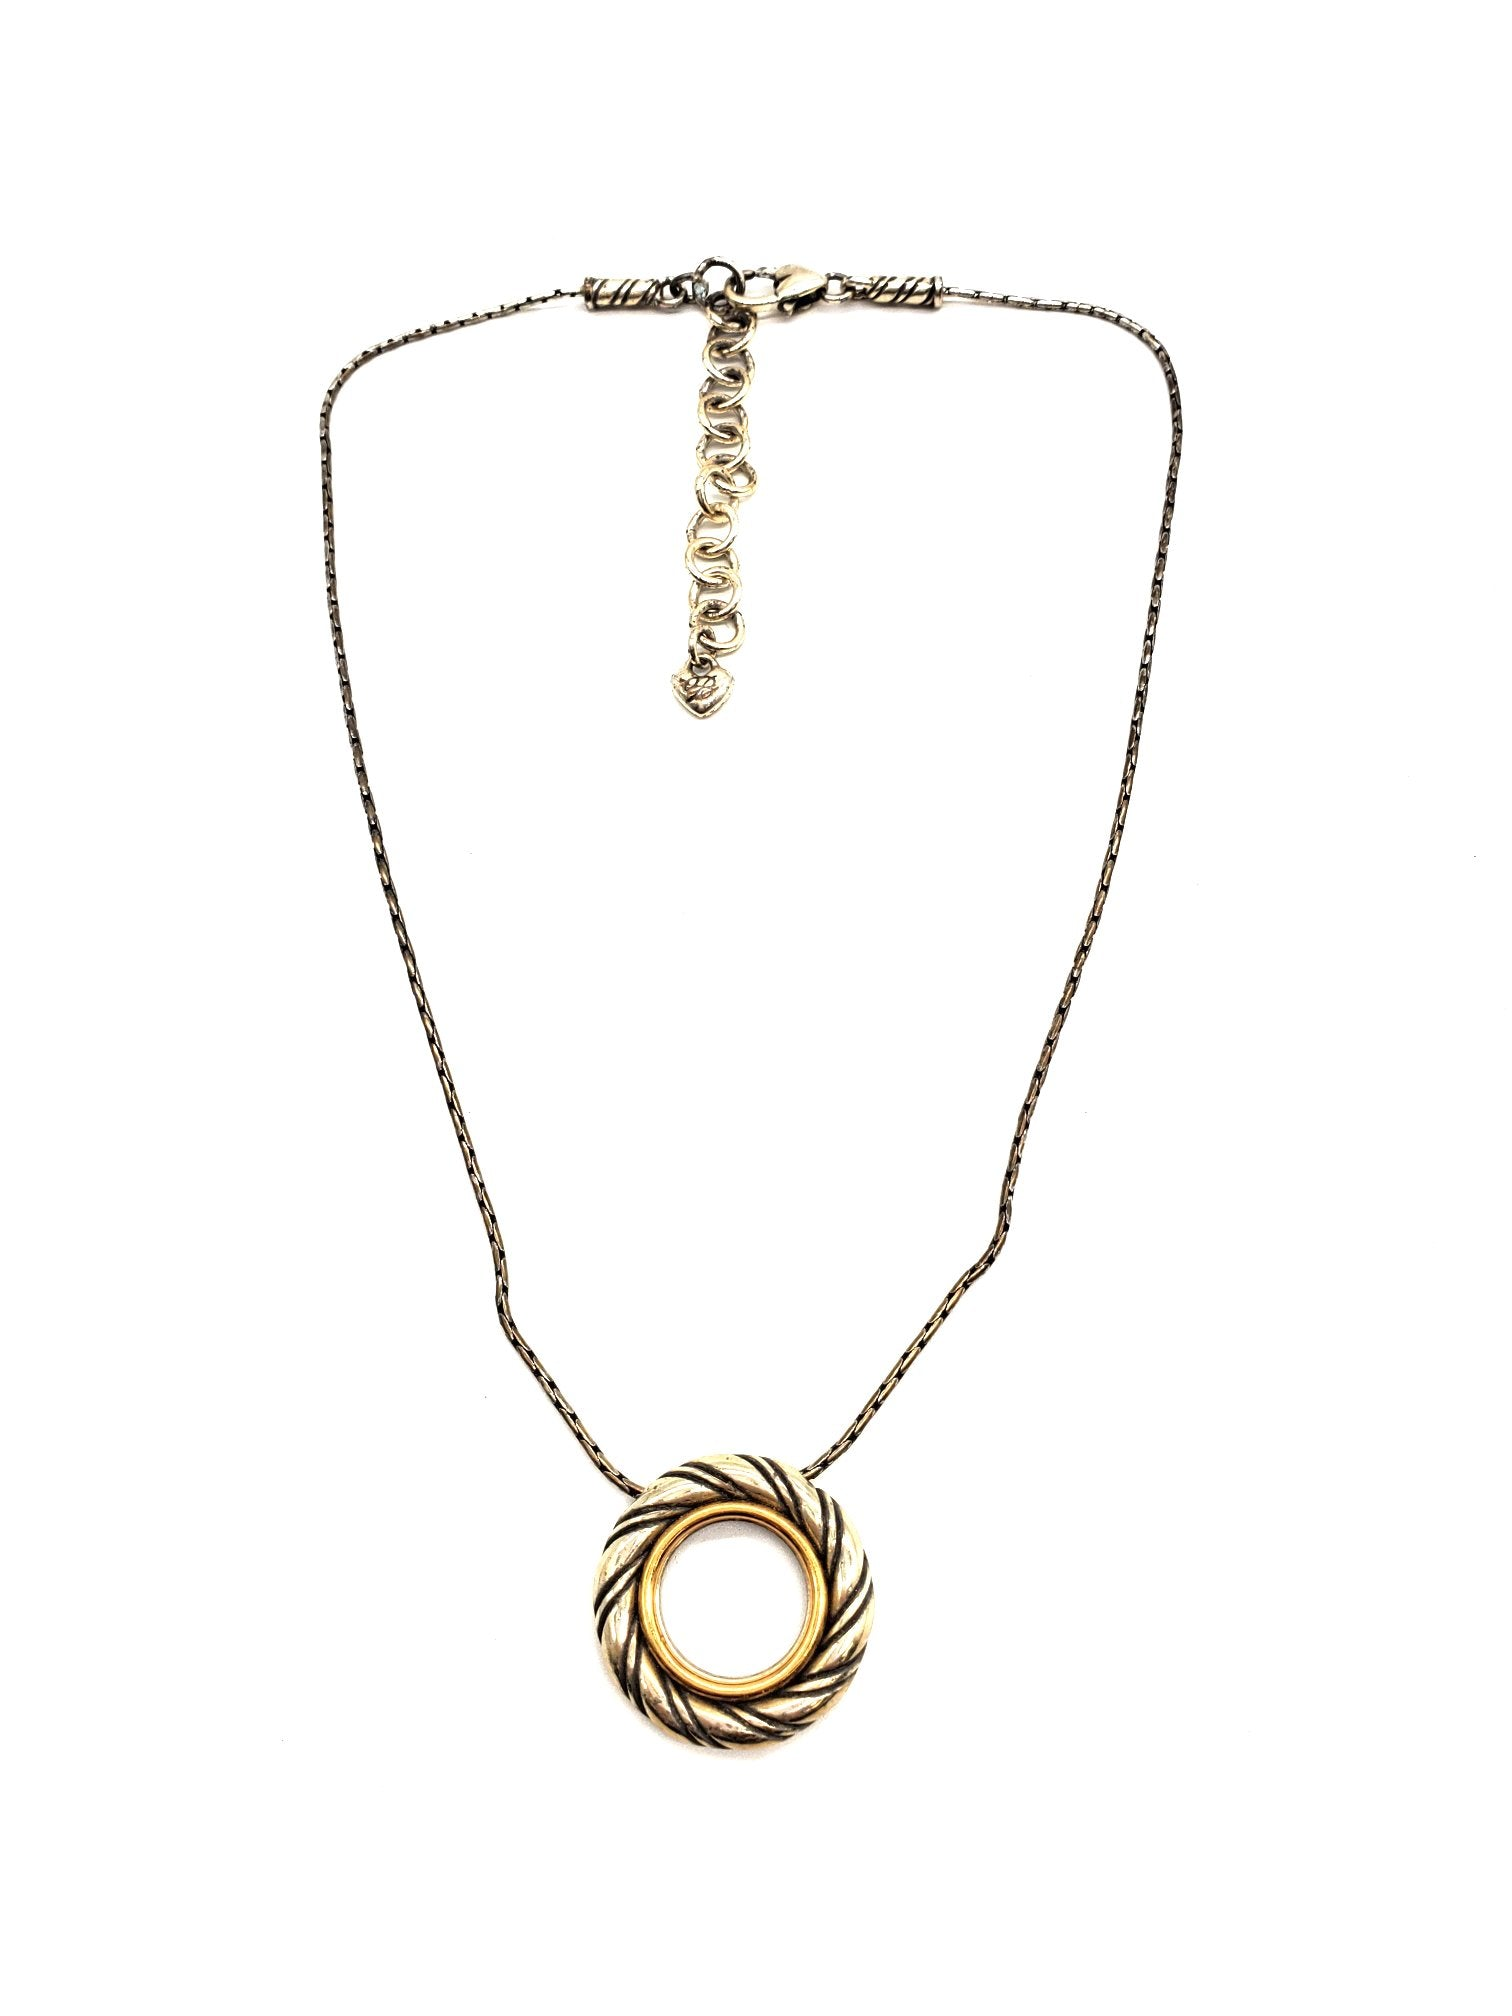 Primary Photo - BRAND: BRIGHTON <BR>STYLE: NECKLACE <BR>COLOR: SILVER <BR>SKU: 262-26275-63913<BR>AS IS <BR>DESIGNER ITEM FINAL SALE